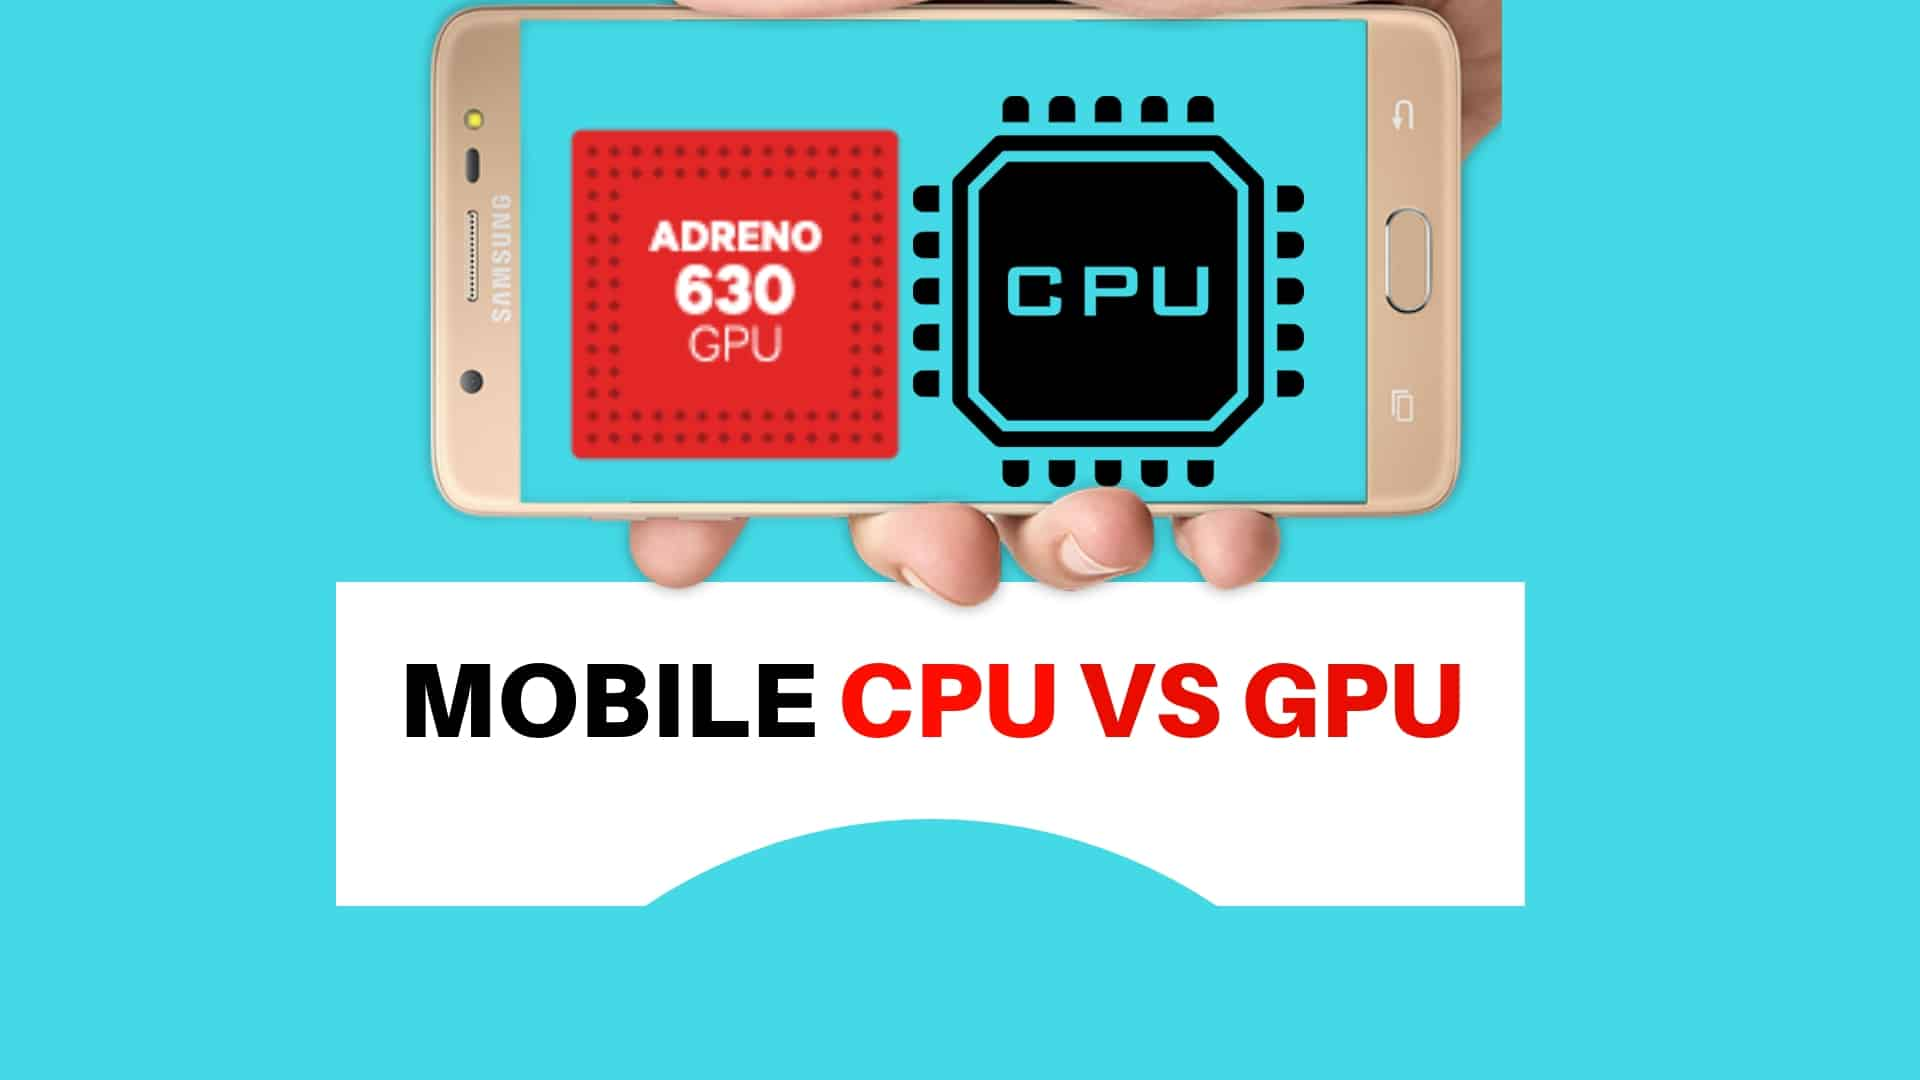 MOBILE CPU VS GPU